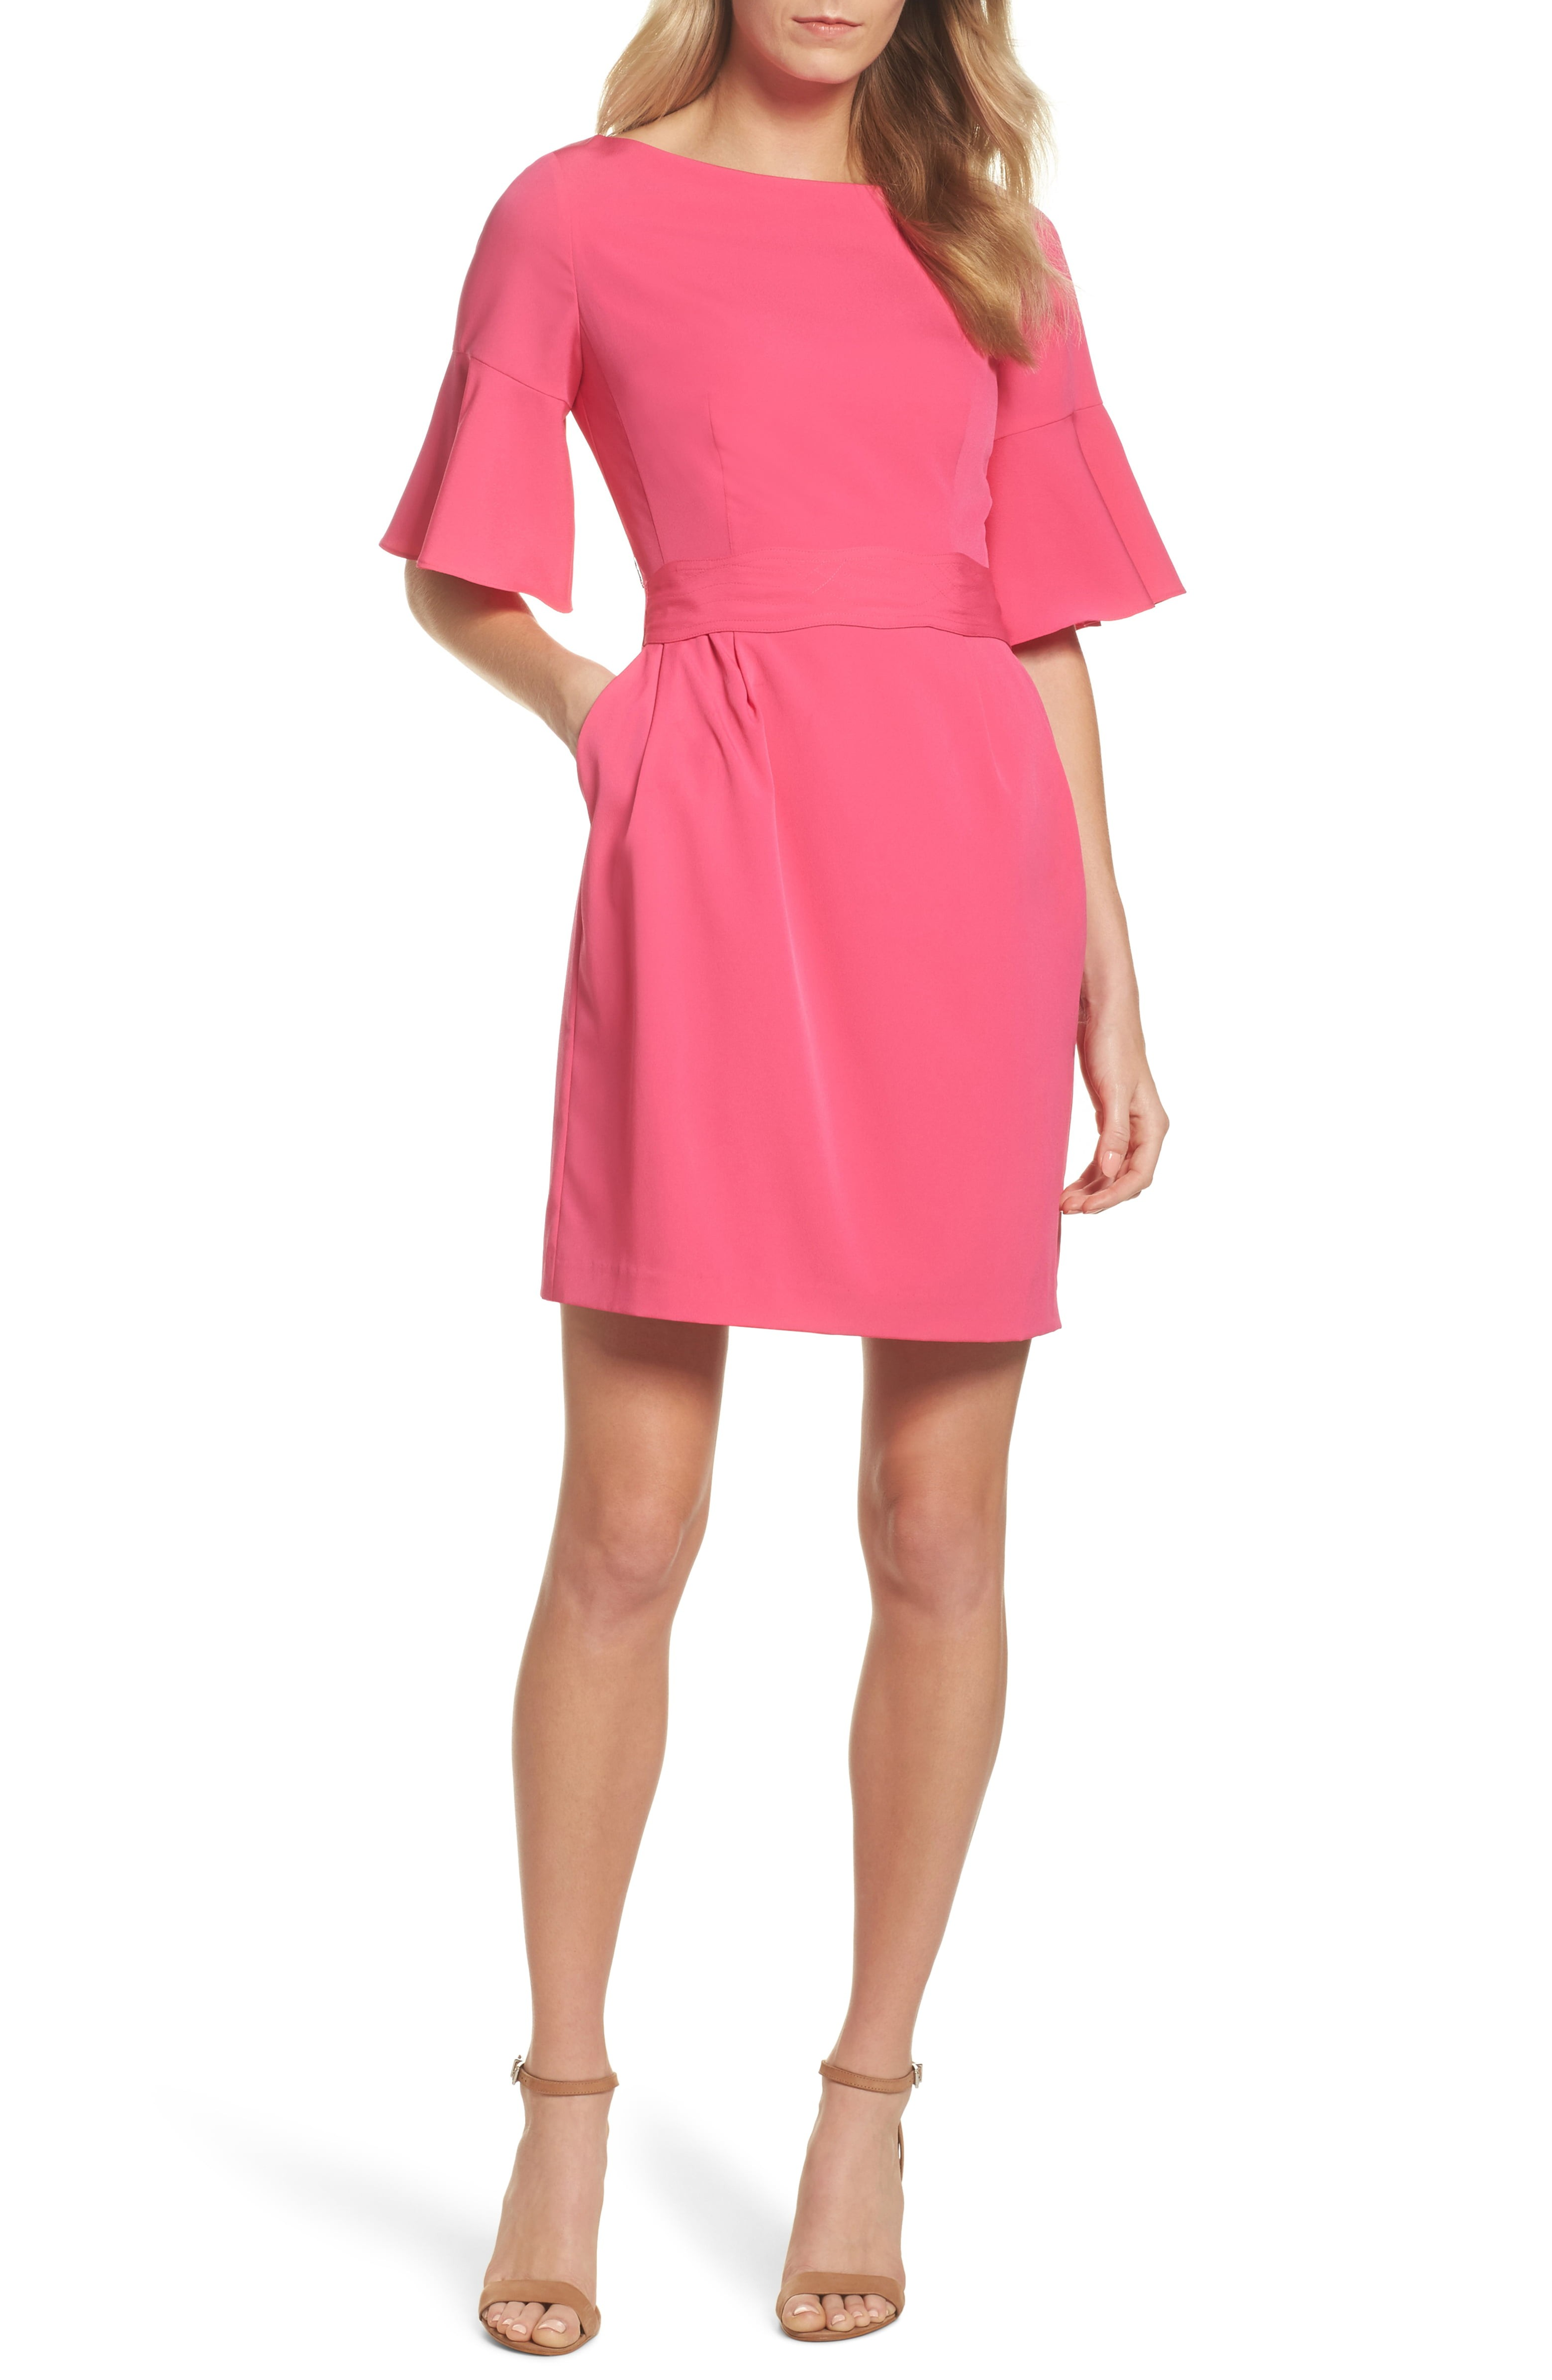 abdaea26db9 What To Wear To A Spring Wedding As A Guest - Lake Shore Lady